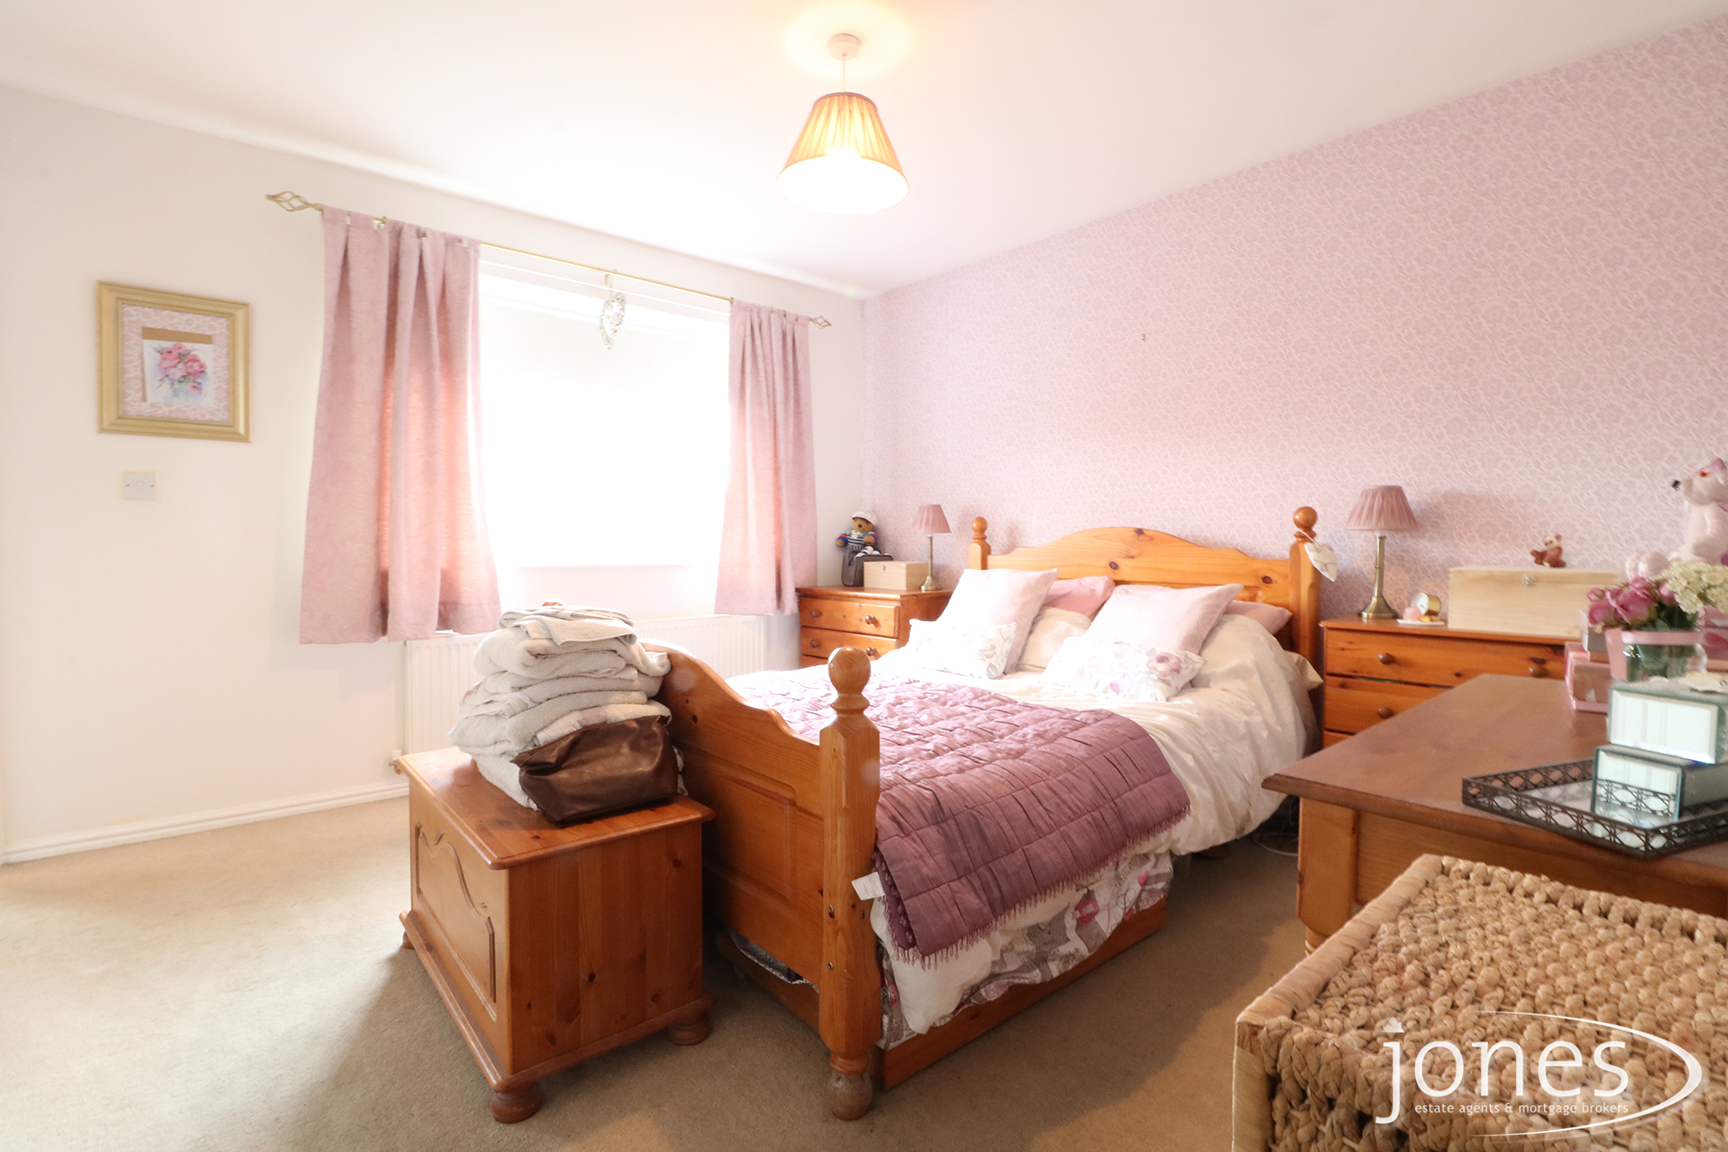 Home for Sale Let - Photo 10 West End Way , Low Hartburn,Stockton on Tees,TS18 3UA